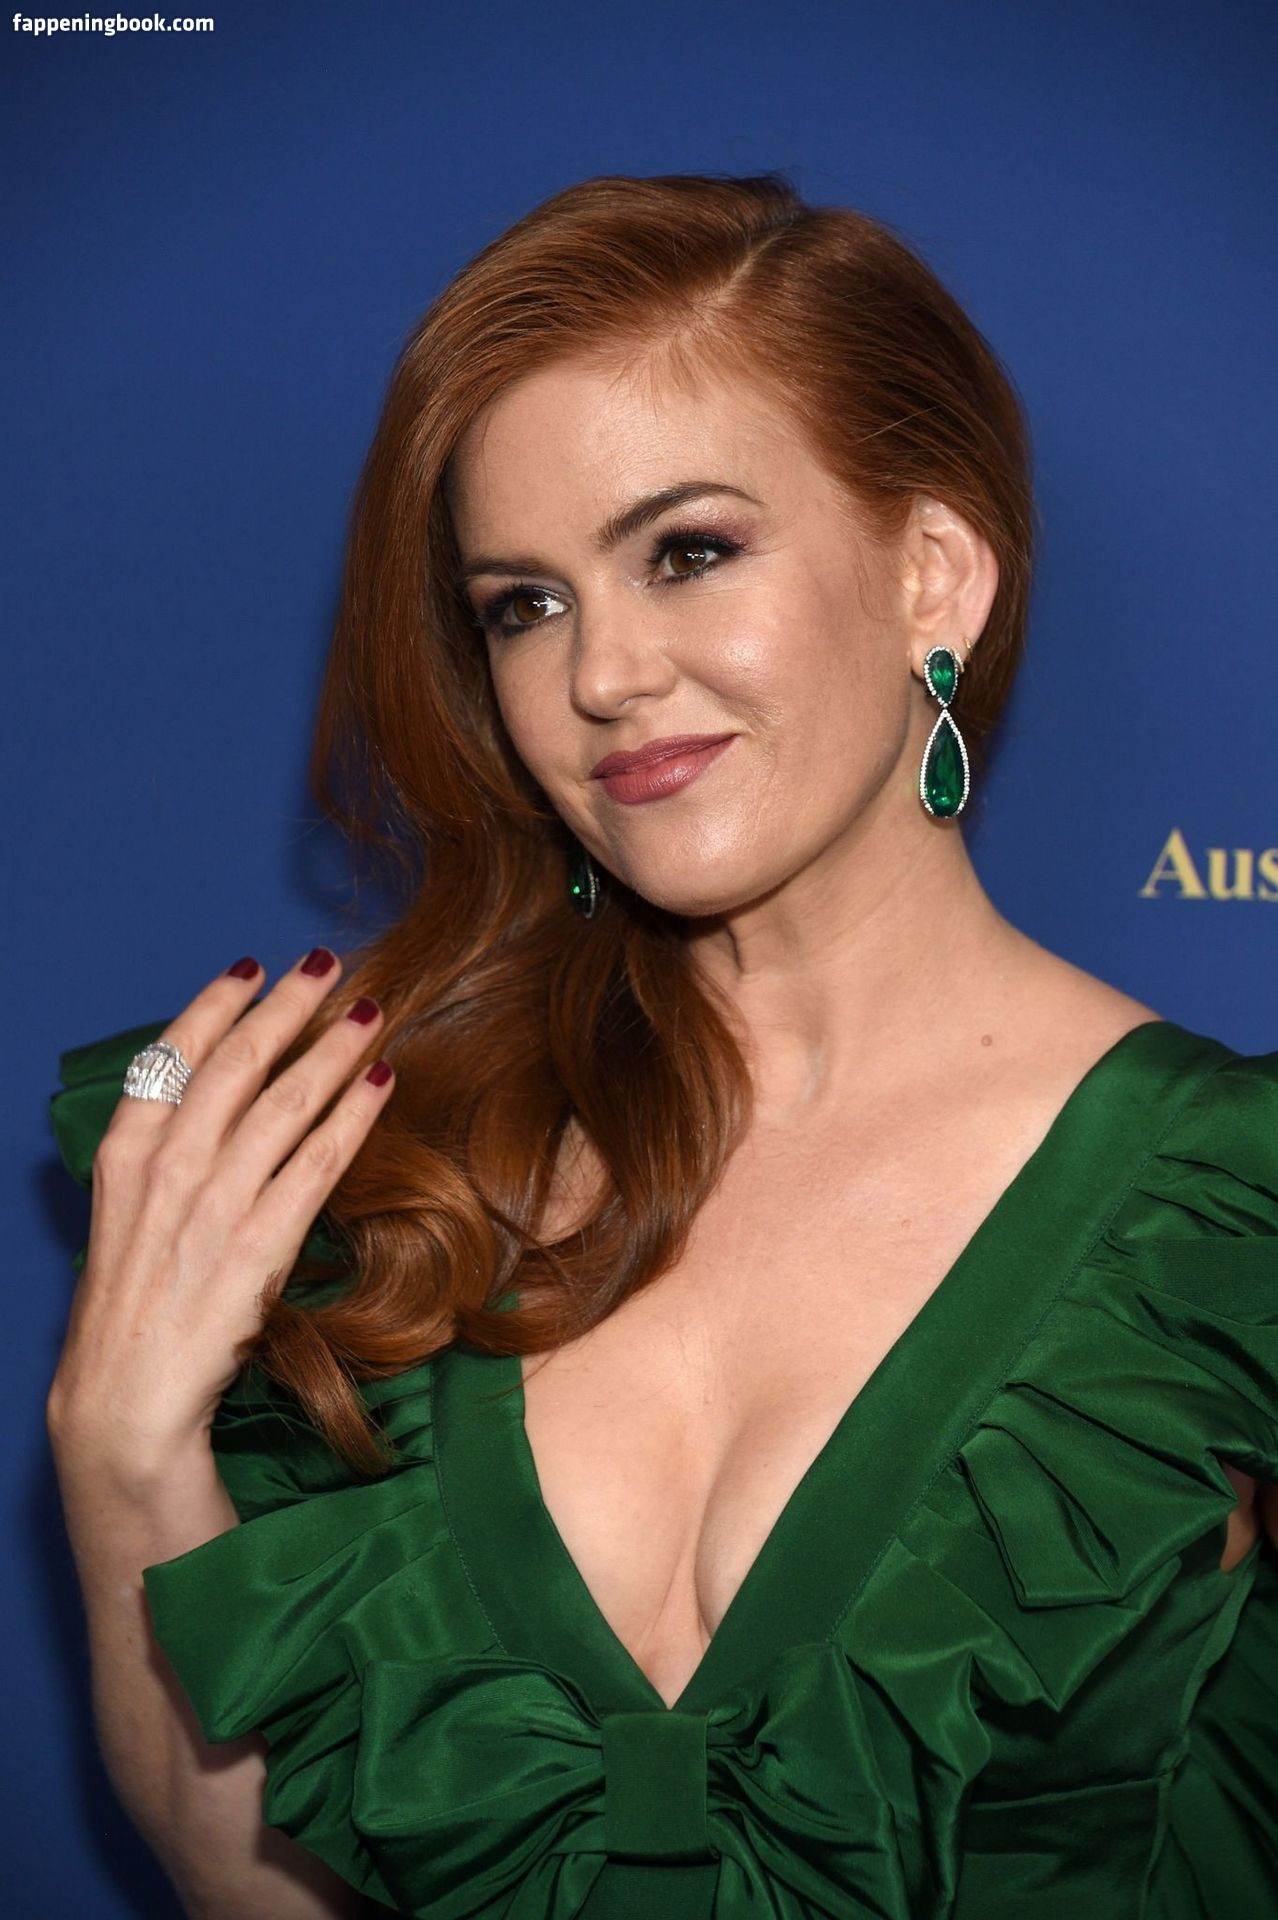 Isla Fisher Nude, Sexy, The Fappening, Uncensored - Photo